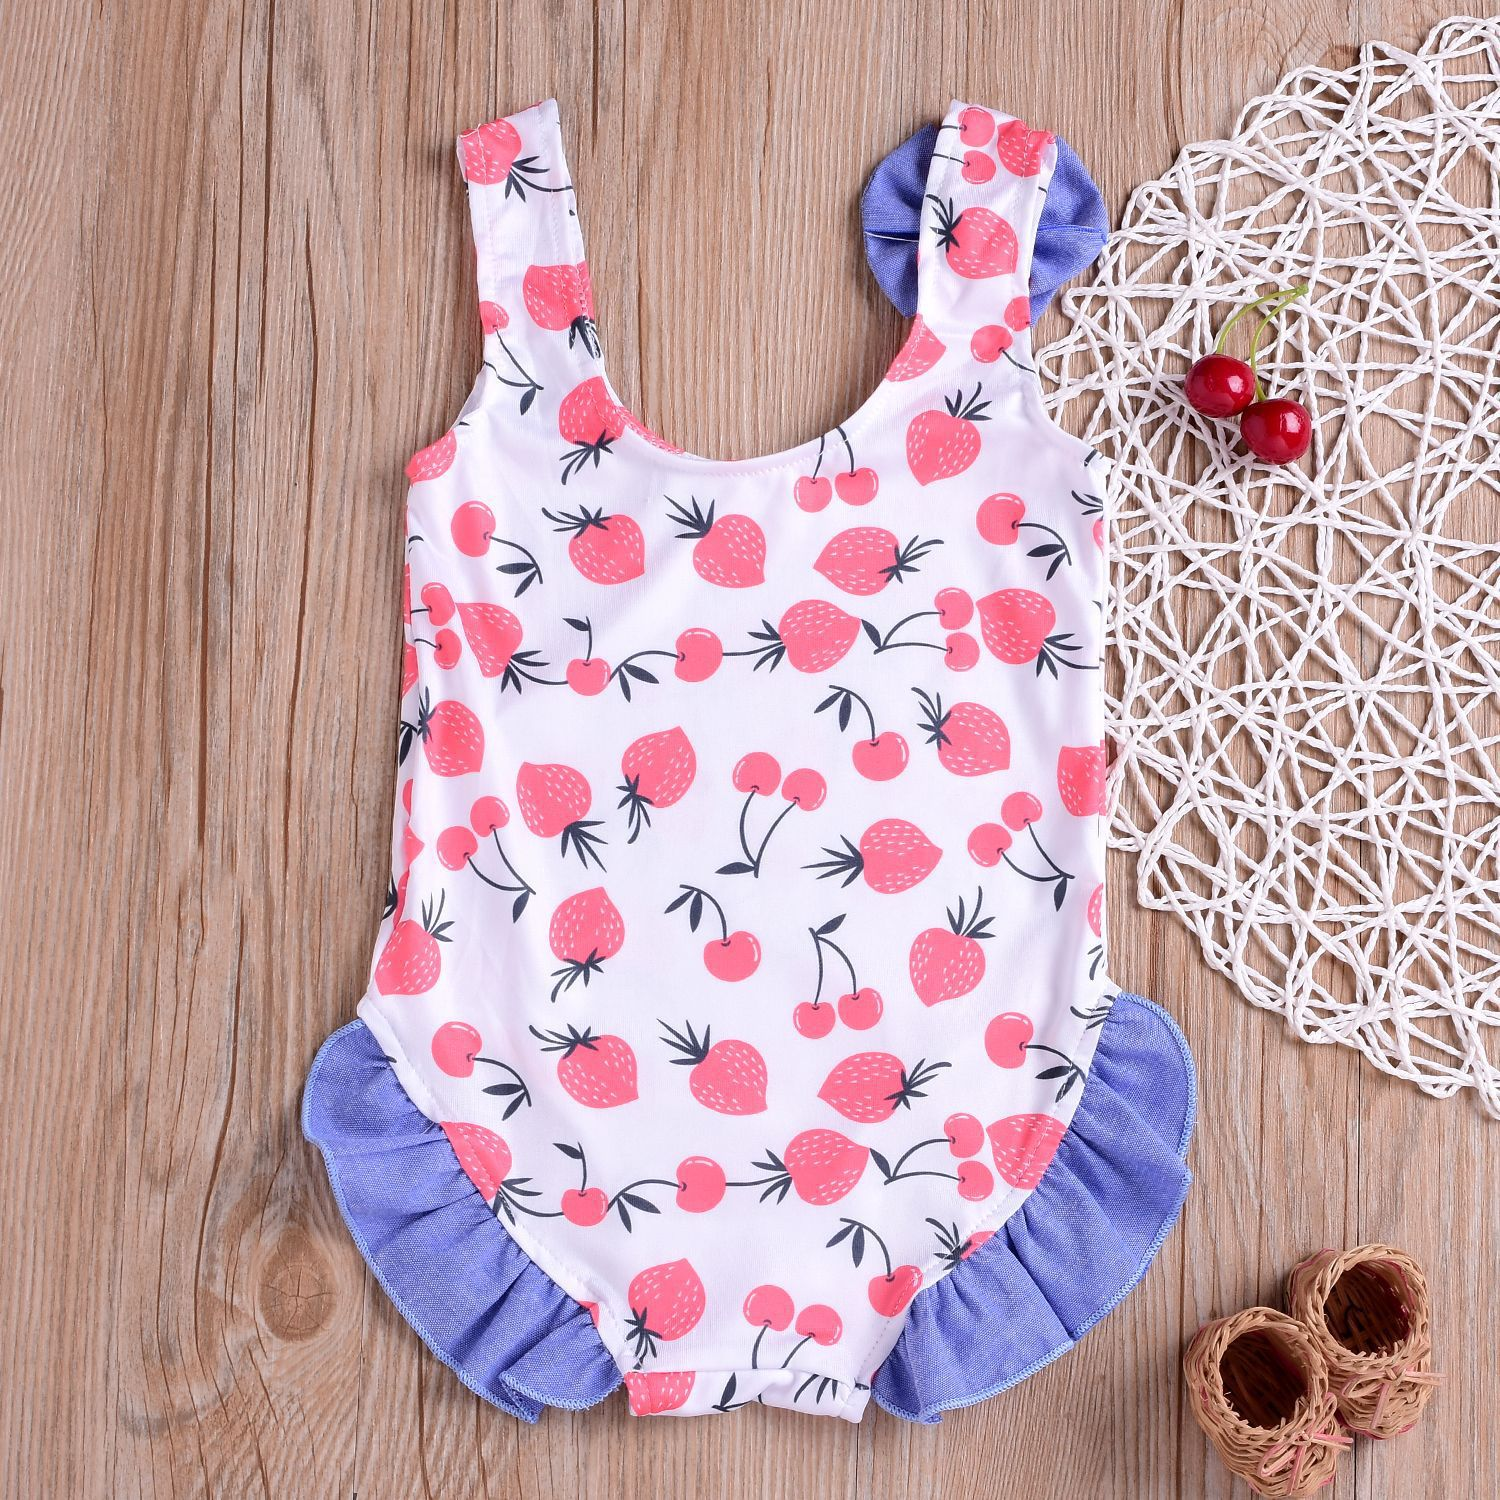 2019 Children New Products Bathing Suit Summer Beach Medium-small Girls One Piece Tour Bathing Suit Korean-style Strawberry Prin